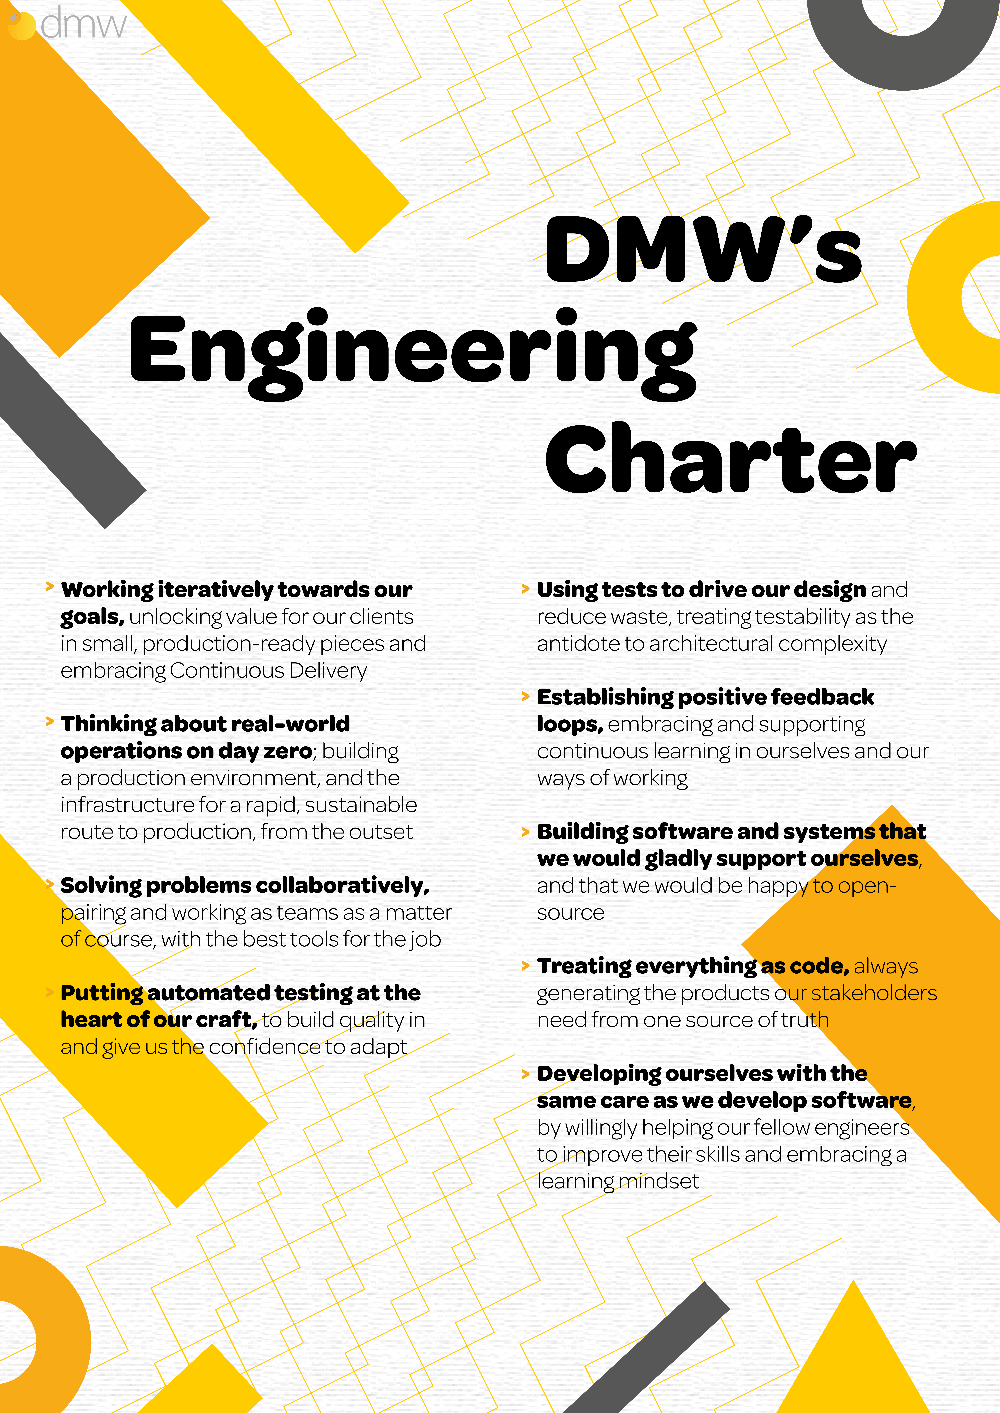 engineering charter indesign png-1